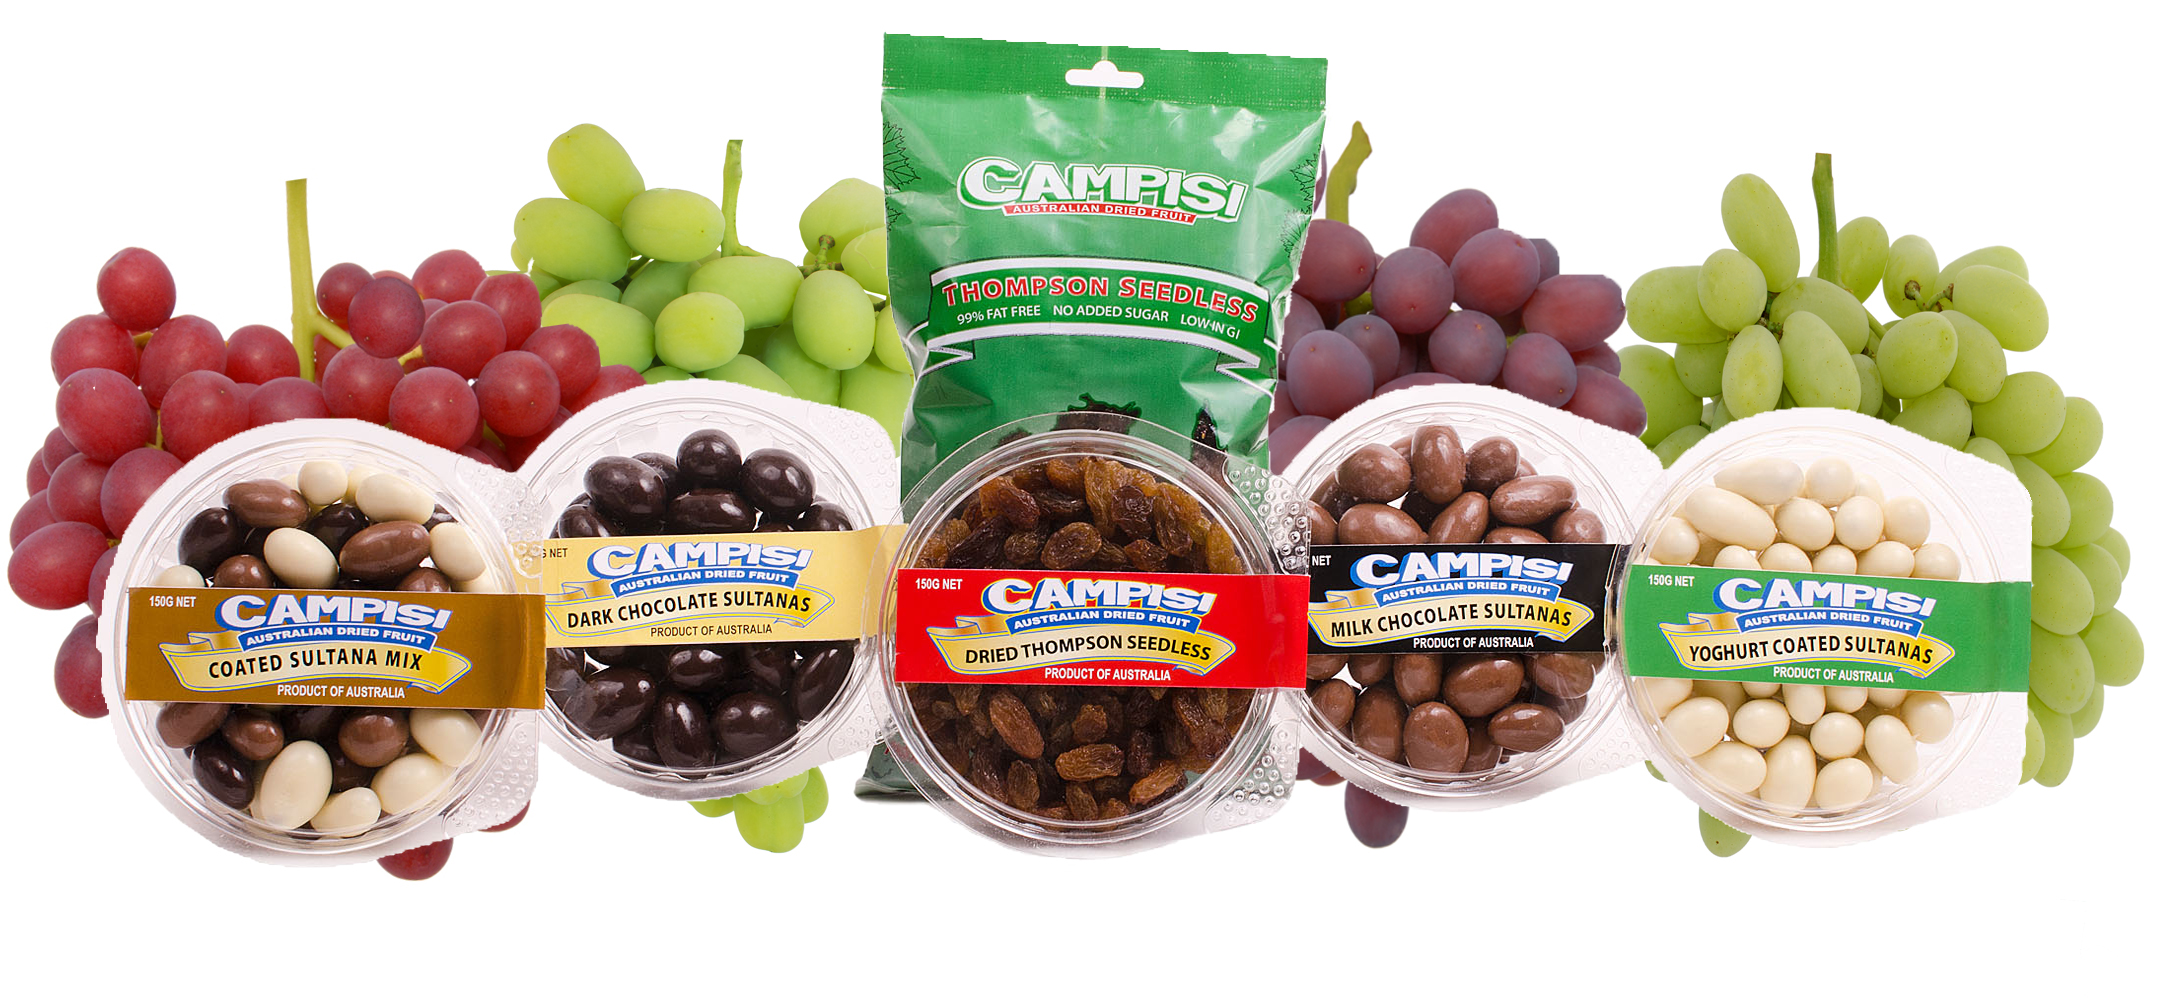 Campisi Products 2